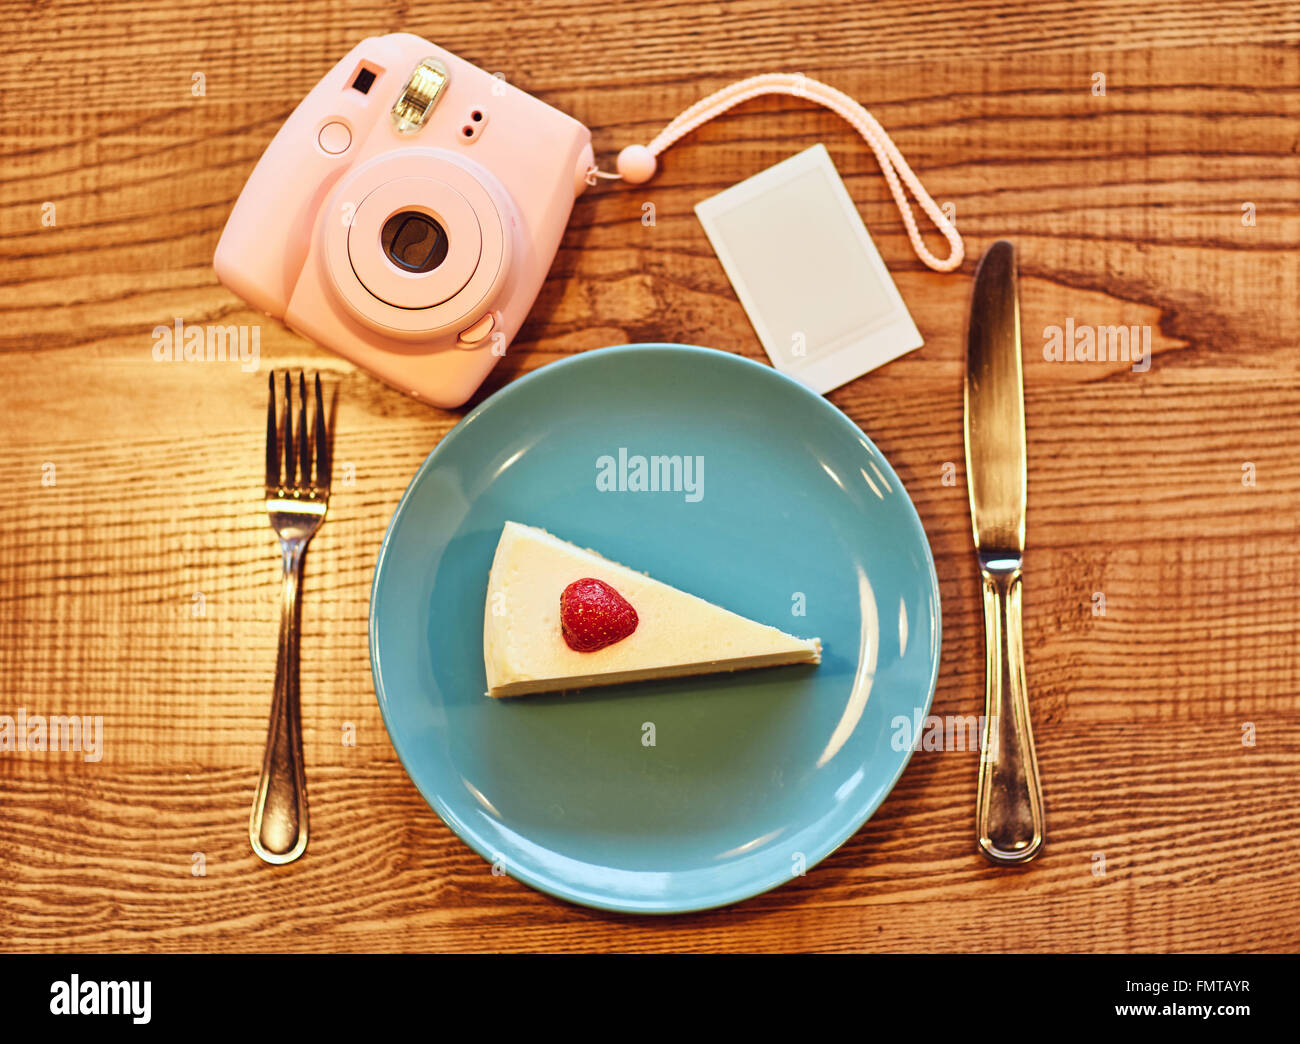 Plate with cake standing on the table near photo camera - Stock Image